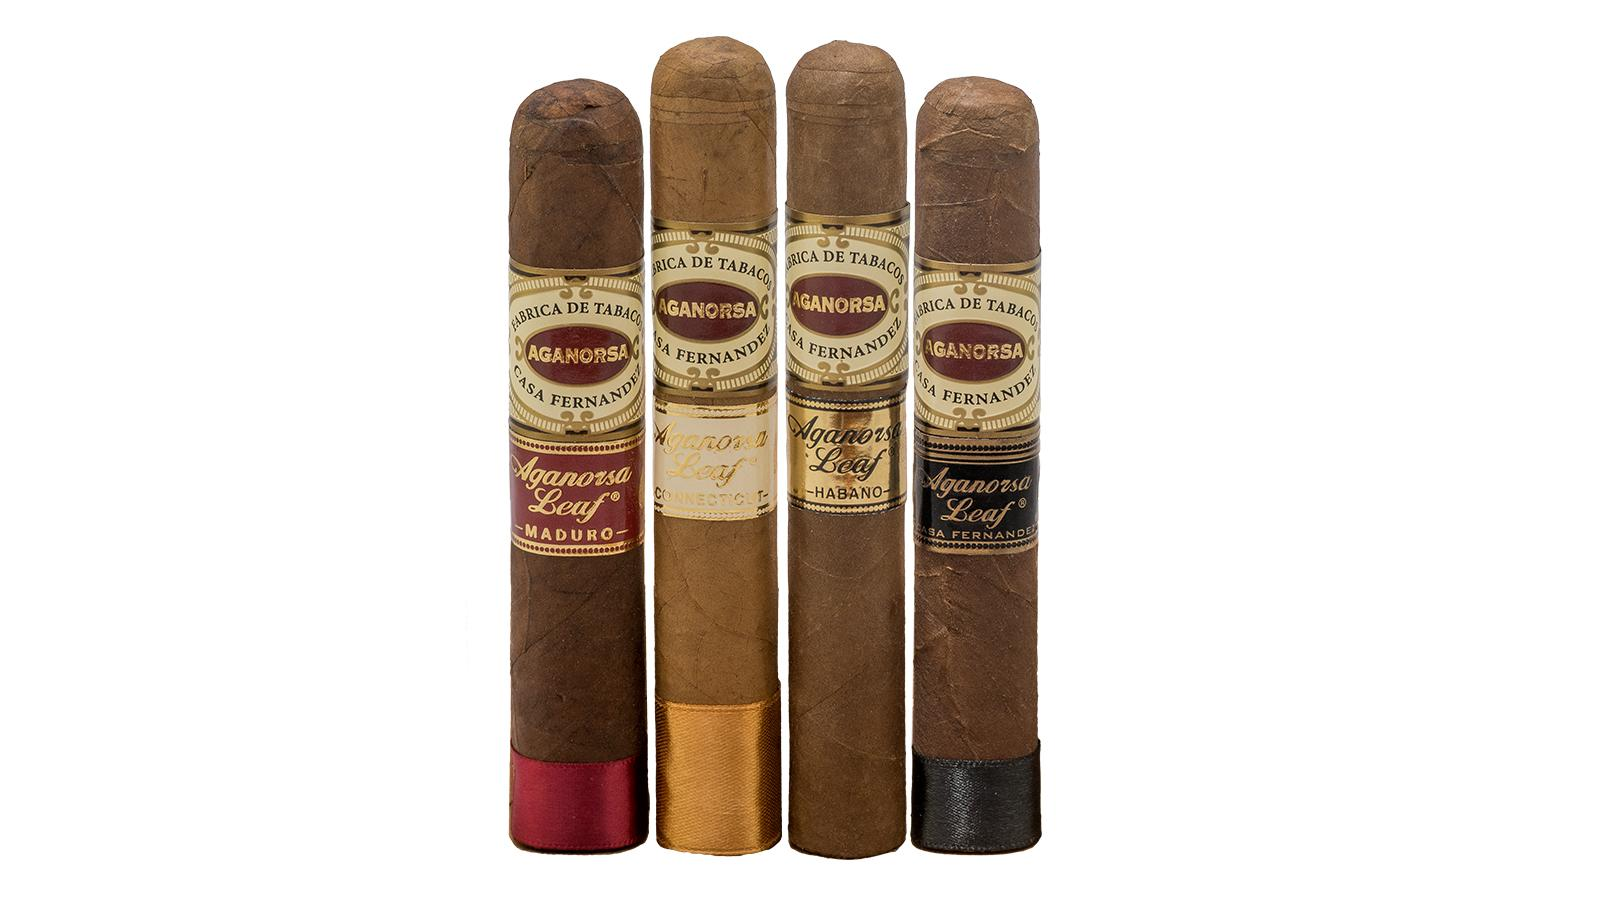 Repackaged Aganorsa Leaf Habano Heading to Retailers